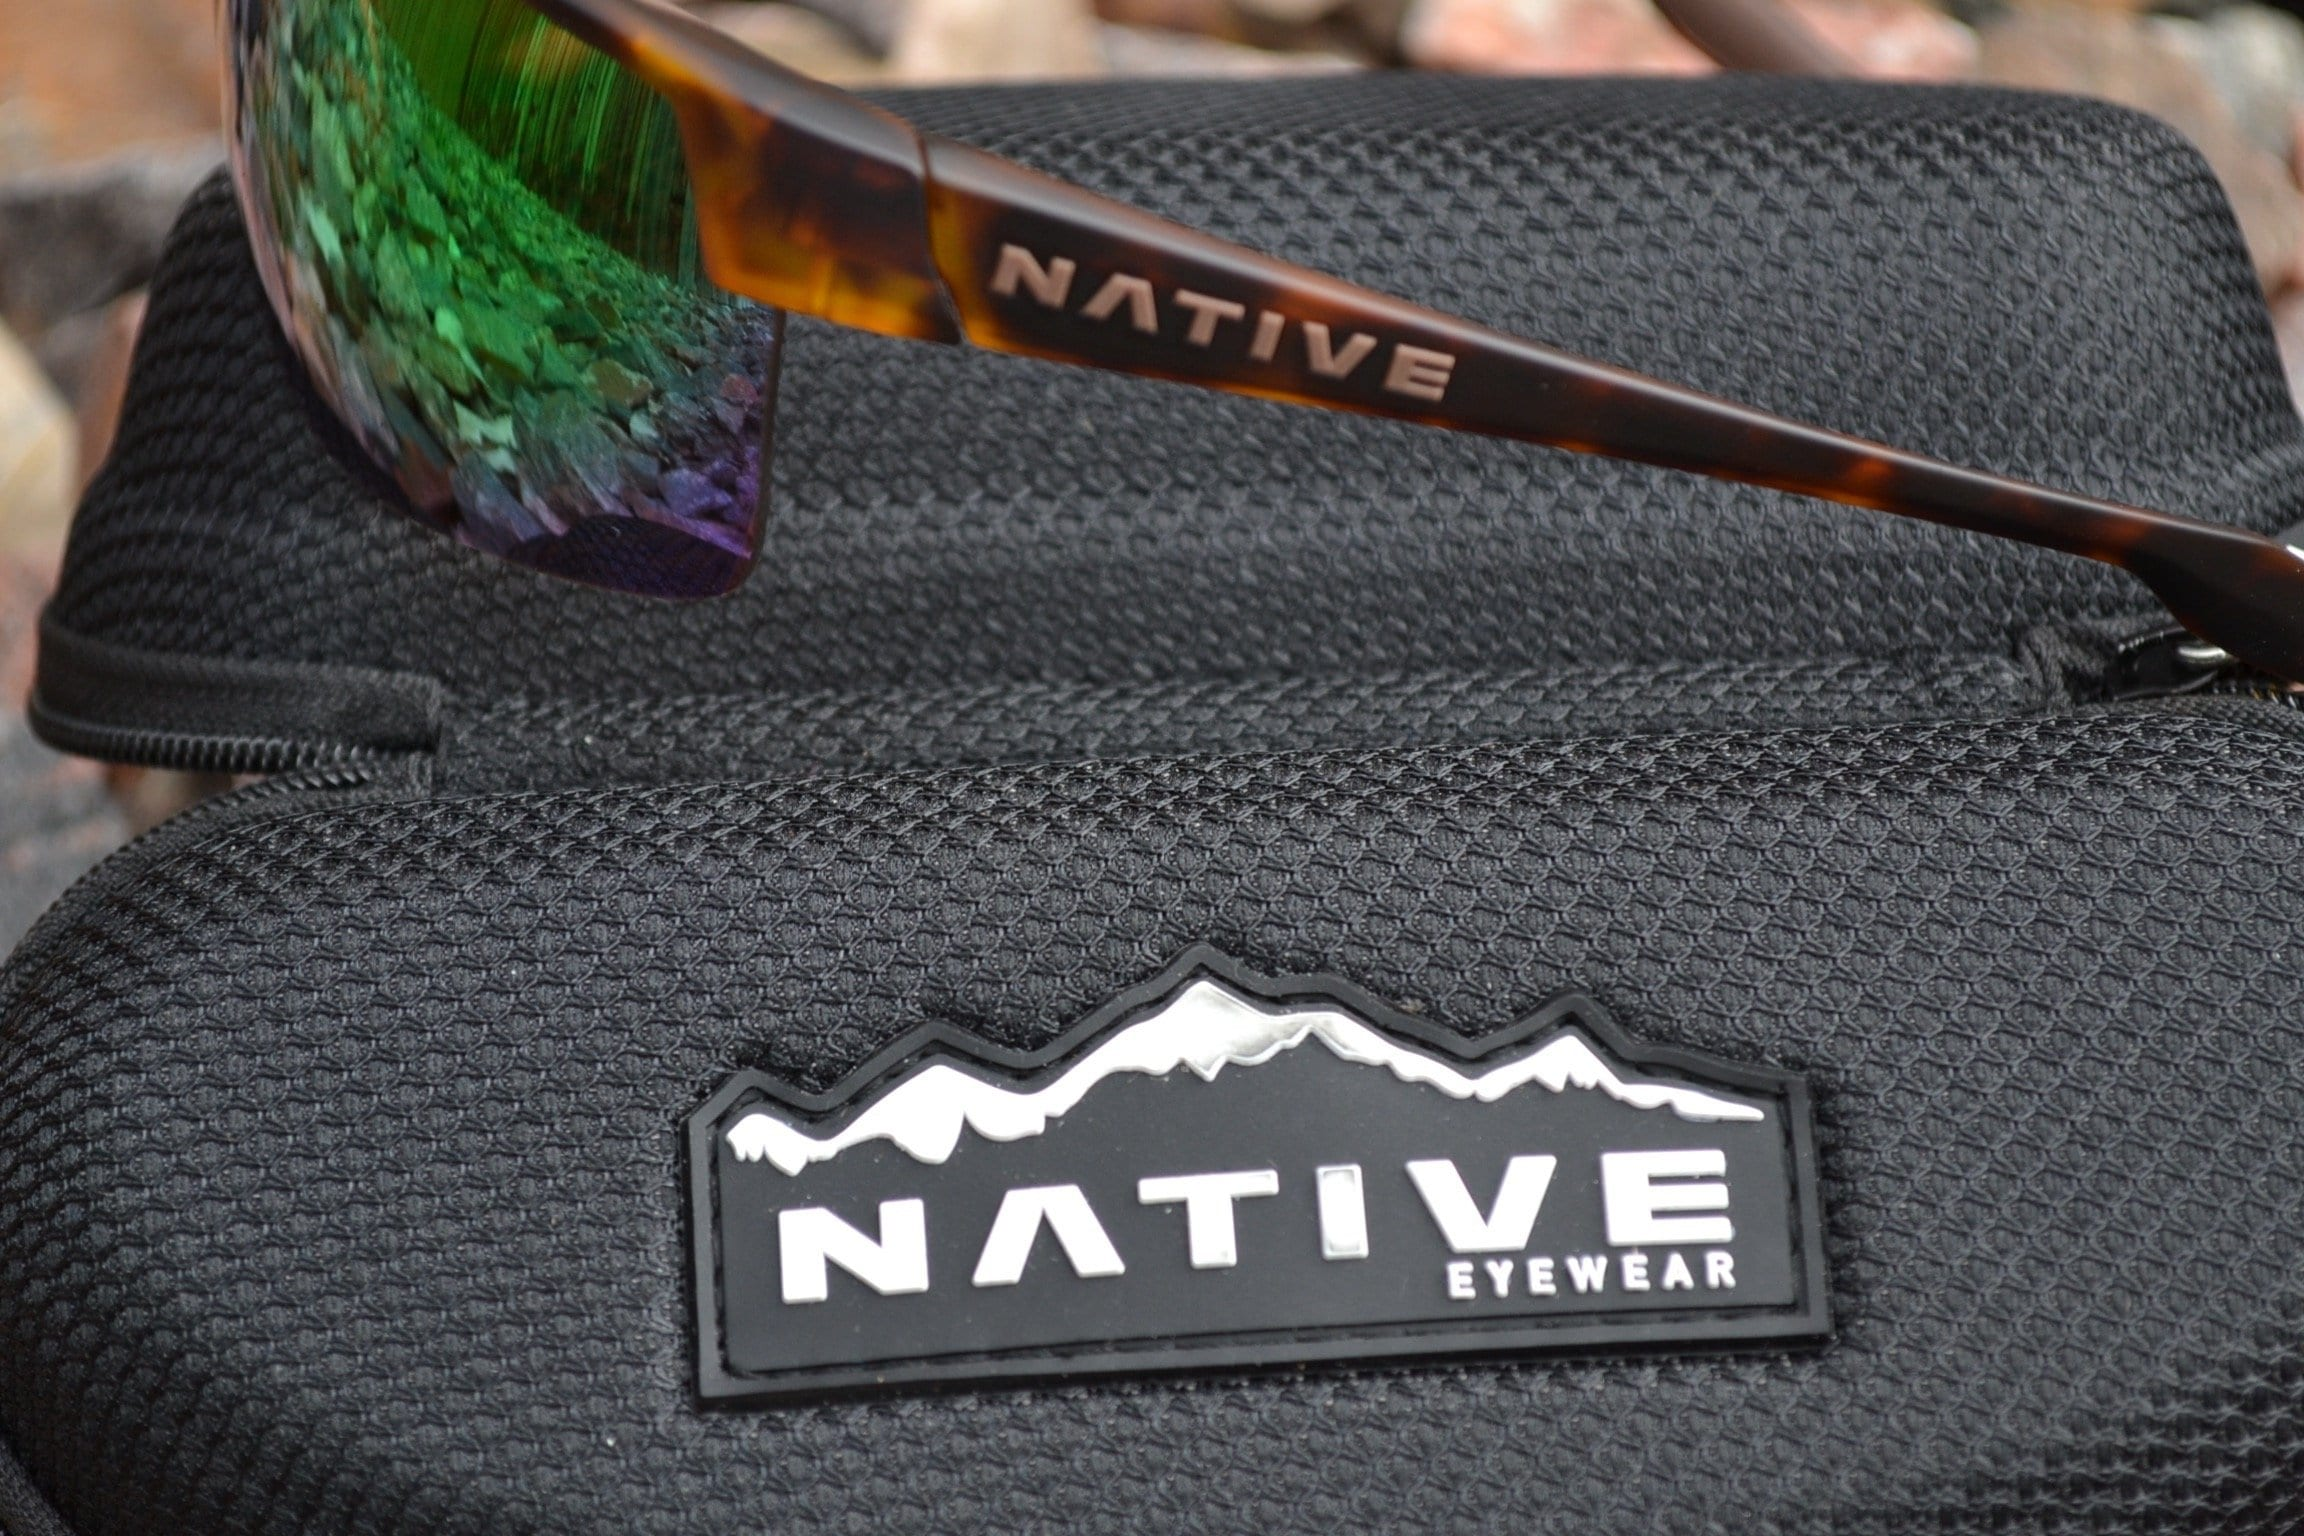 1df294067b6 Product marking along each temple identifies the Native Eyewear Hardtop  Ultra XP